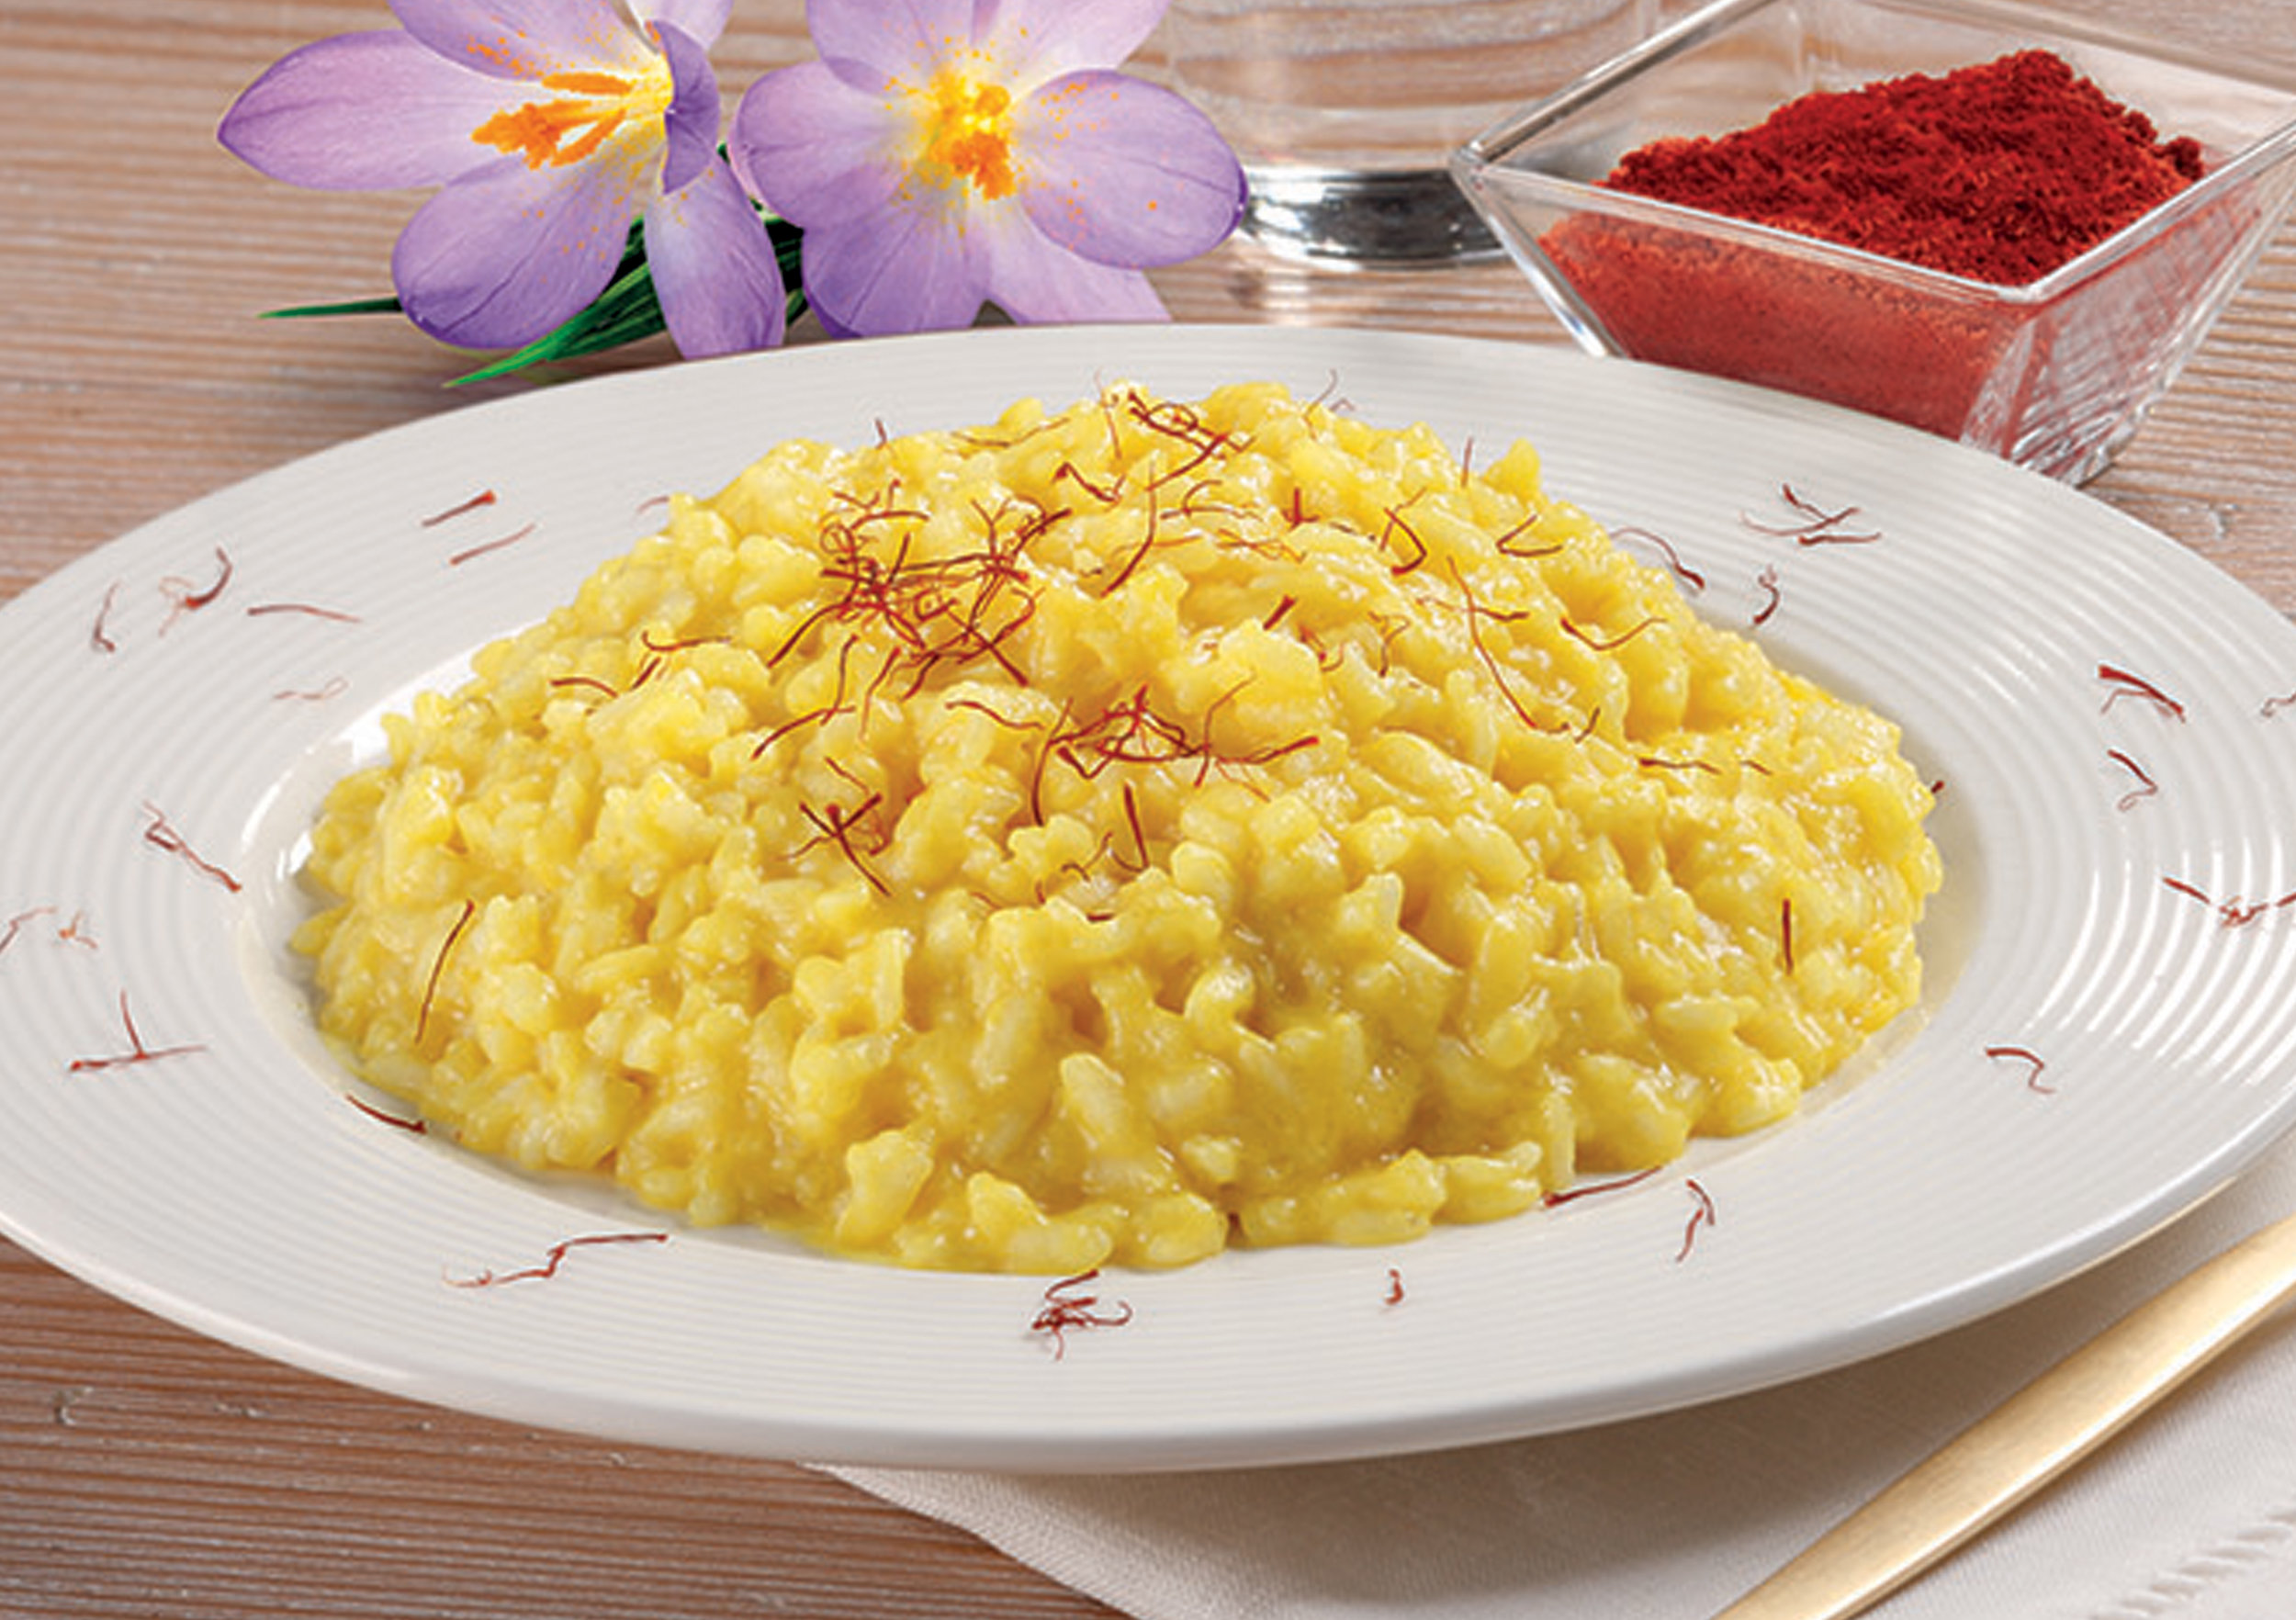 SAFFRON RISOTTO - This ready to cook and serve Risotto is made with our imported Carnaroli Rice and includes a rich and creamy blend of Grana Padano cheese and imported Saffron threads, giving this dish flavor and color.Item 02014  //  Case Pack: 12/10.58 oz. bags  //  Case Net Wt: 7.9 lbs.  //  Product of Italy  //  MORE INFO